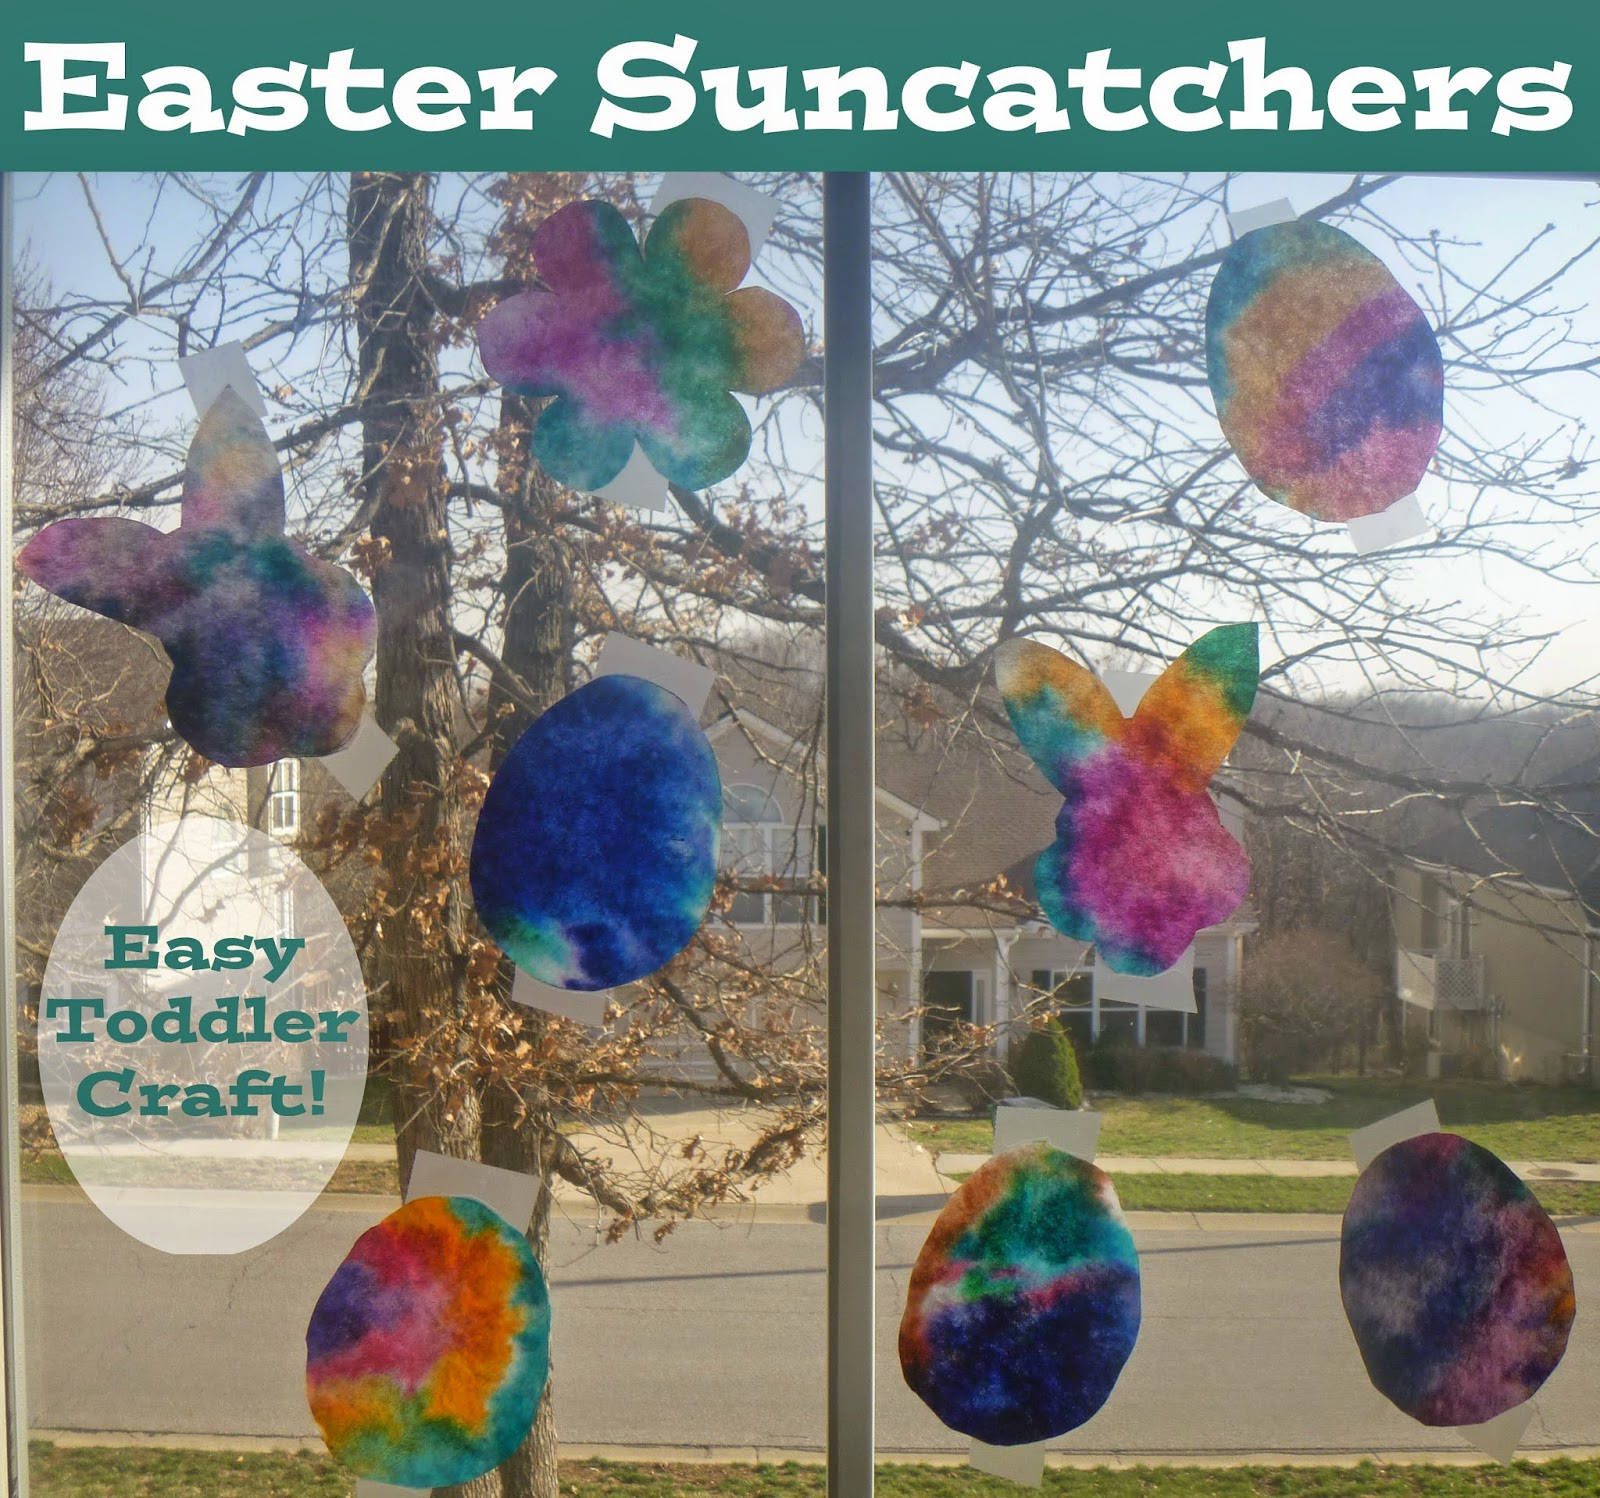 Easter Suncatchers: Easy Toddler Craft with Coffee Filters